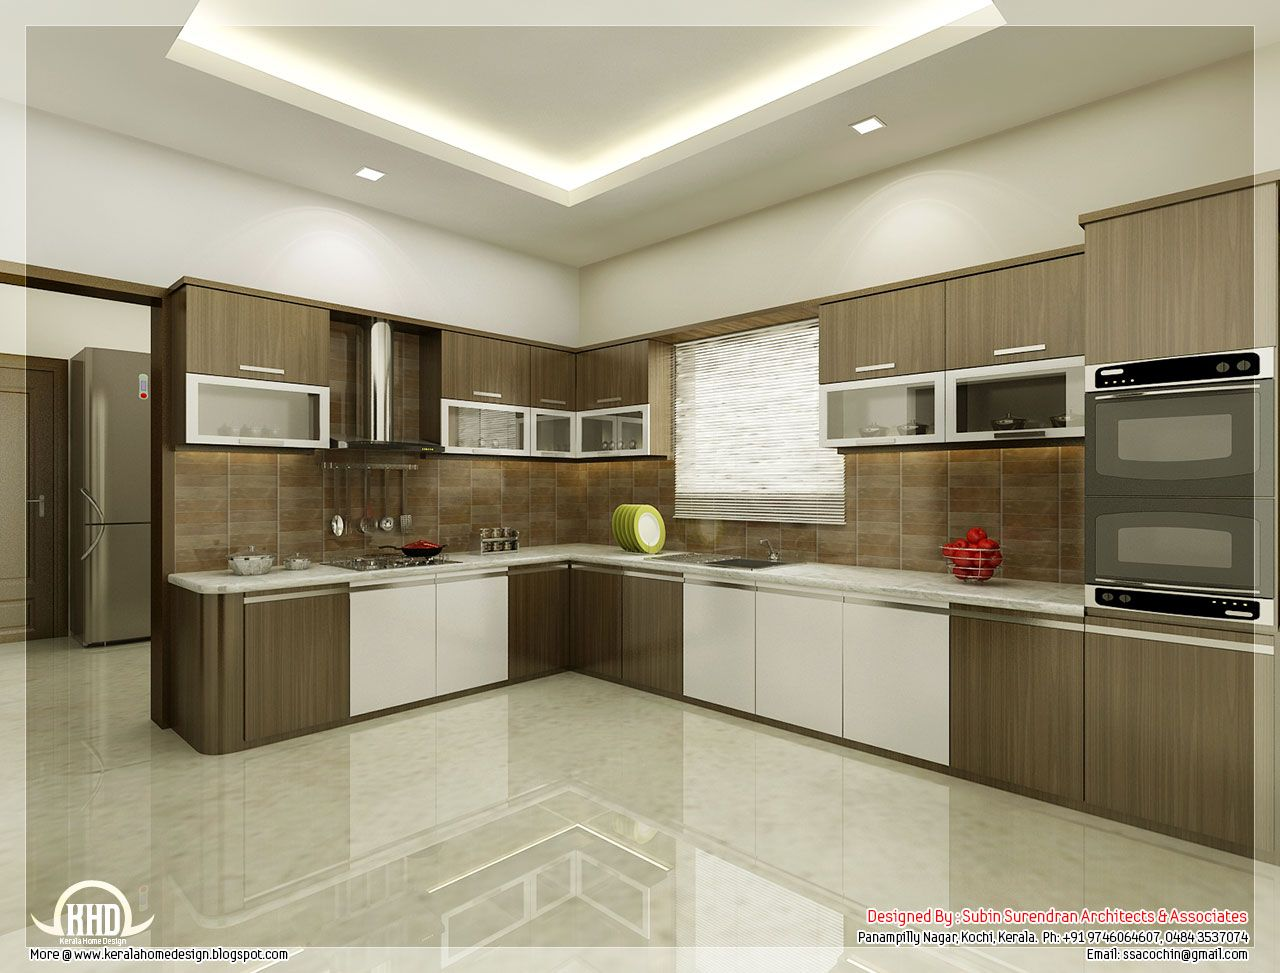 kitchen dining interiors kerala home design floor plans home luxury modern home interior design haynes house - Interior Design Kitchen Ideas